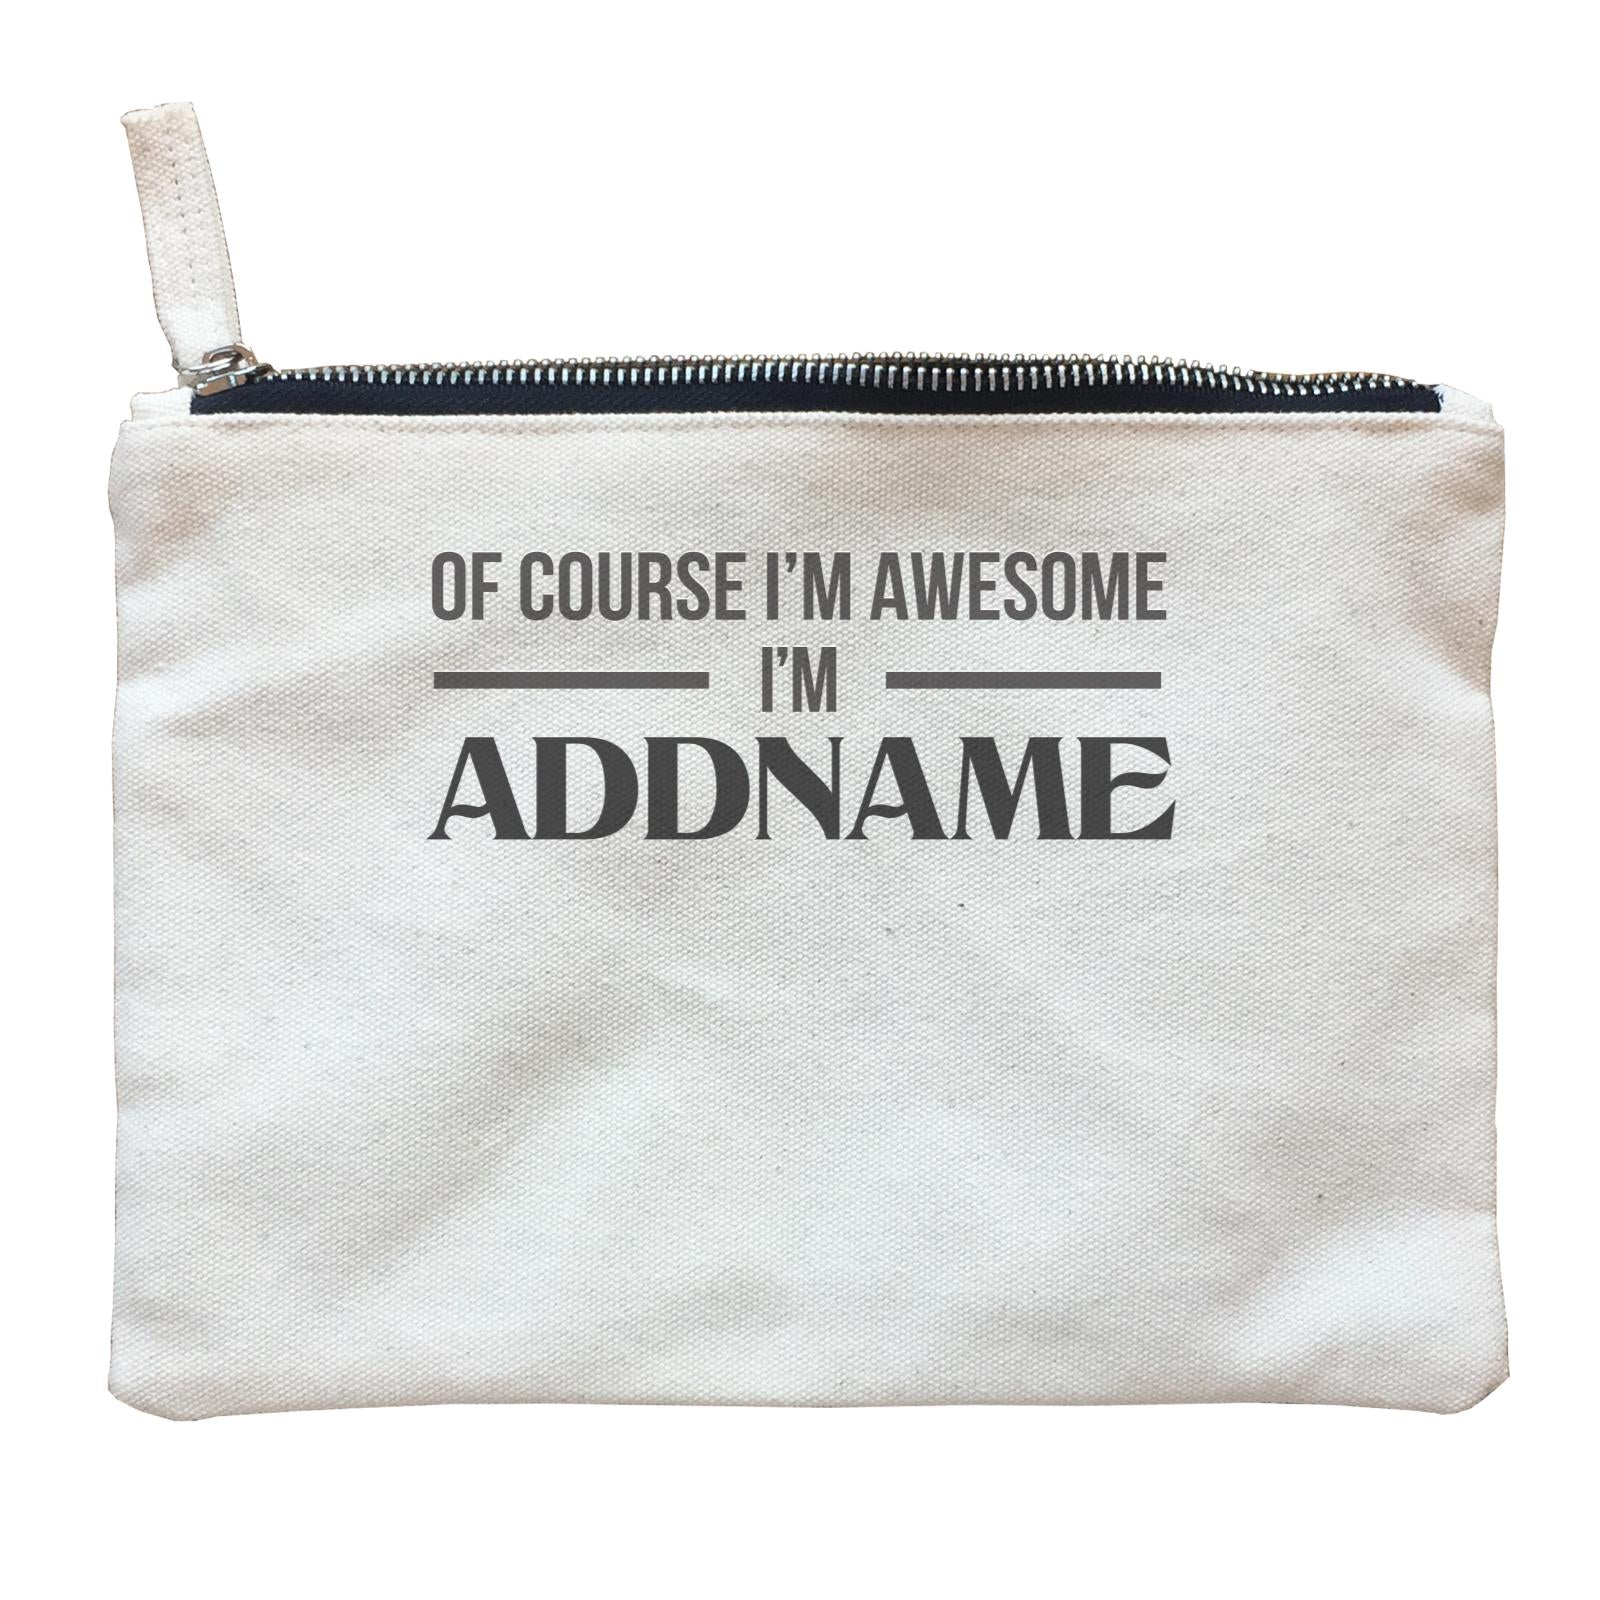 Personalize It Awesome Of Course I'm Awesome I'm Addname Zipper Pouch